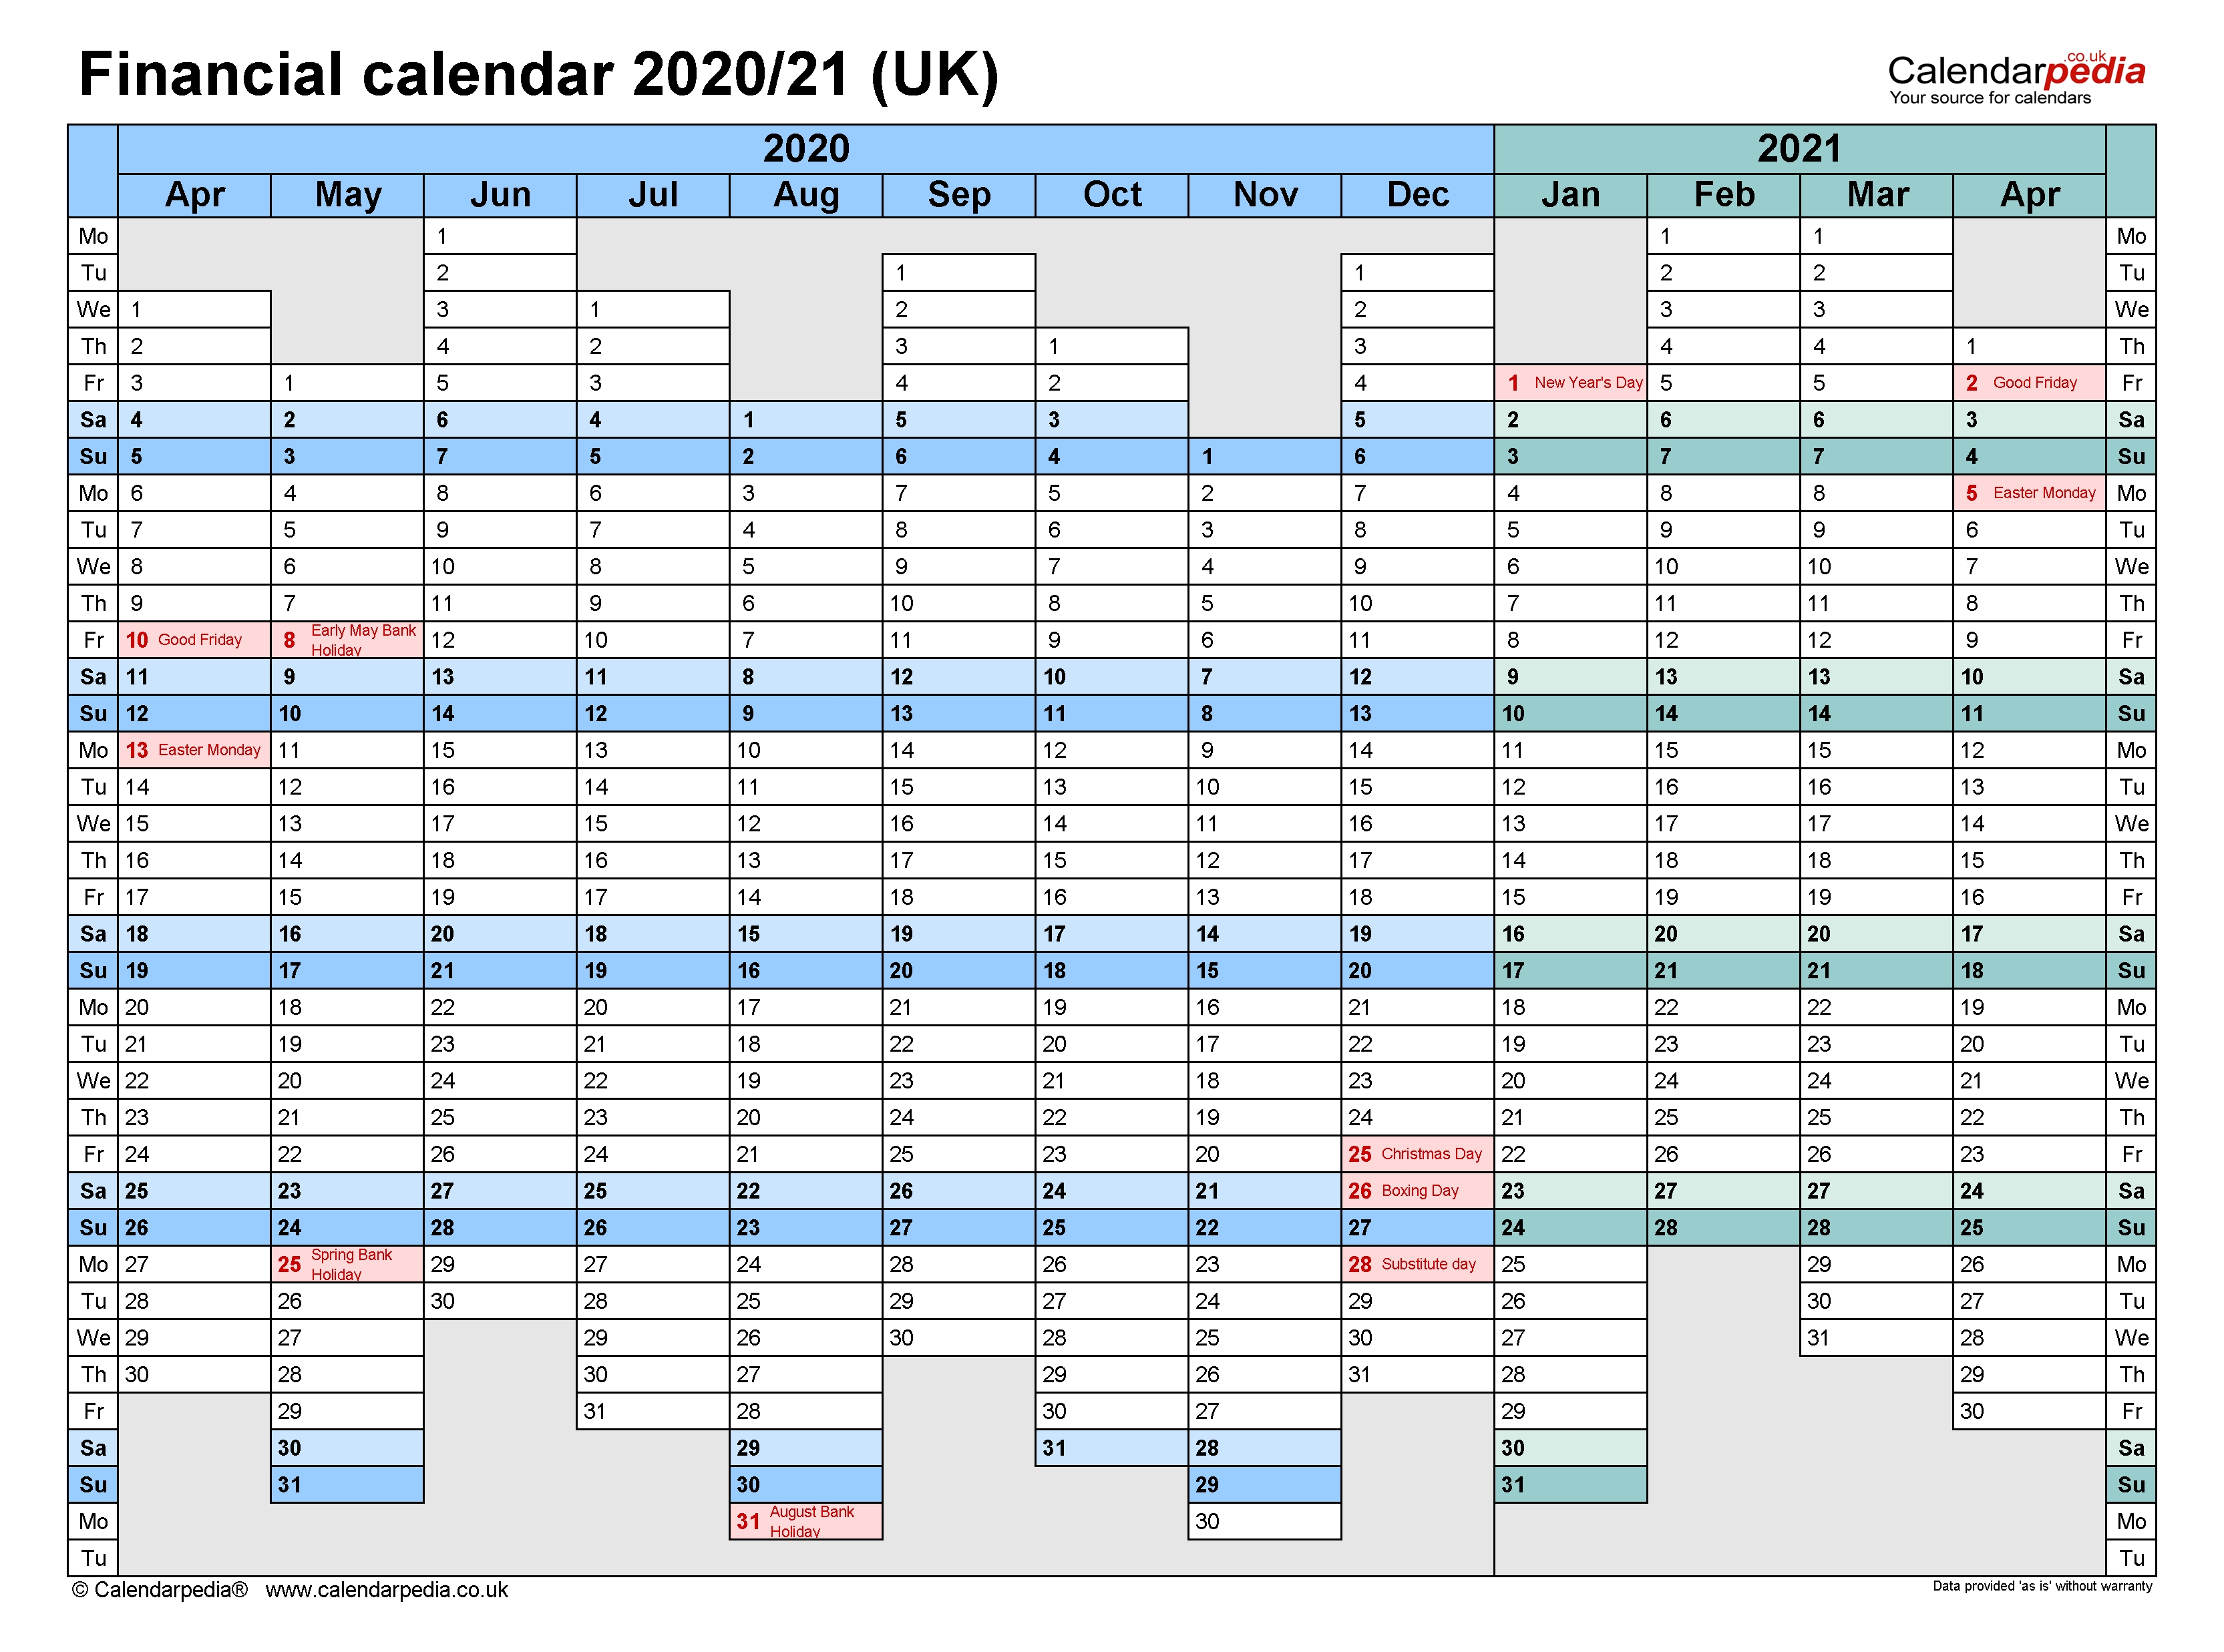 Financial Calendars 2020/21 (Uk) In Microsoft Excel Format